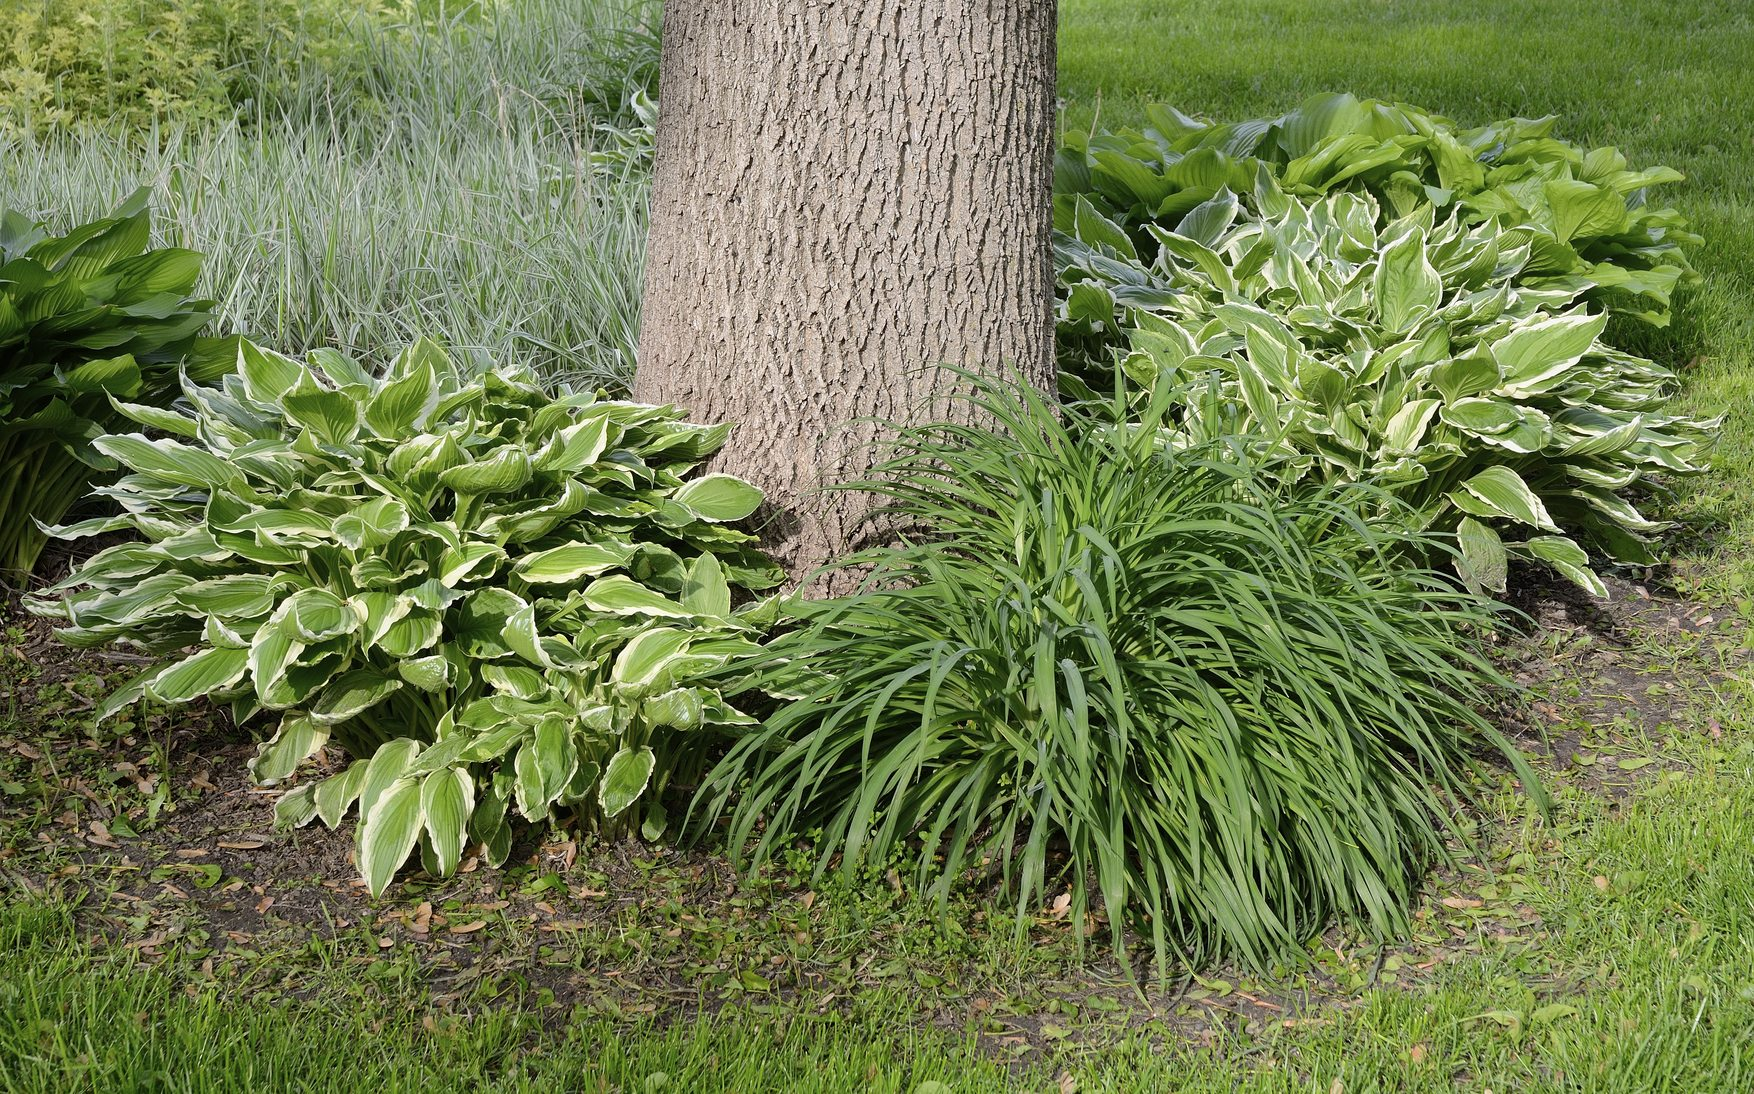 Hosta Plant Companions In The Garden What Are Companions For Hostas